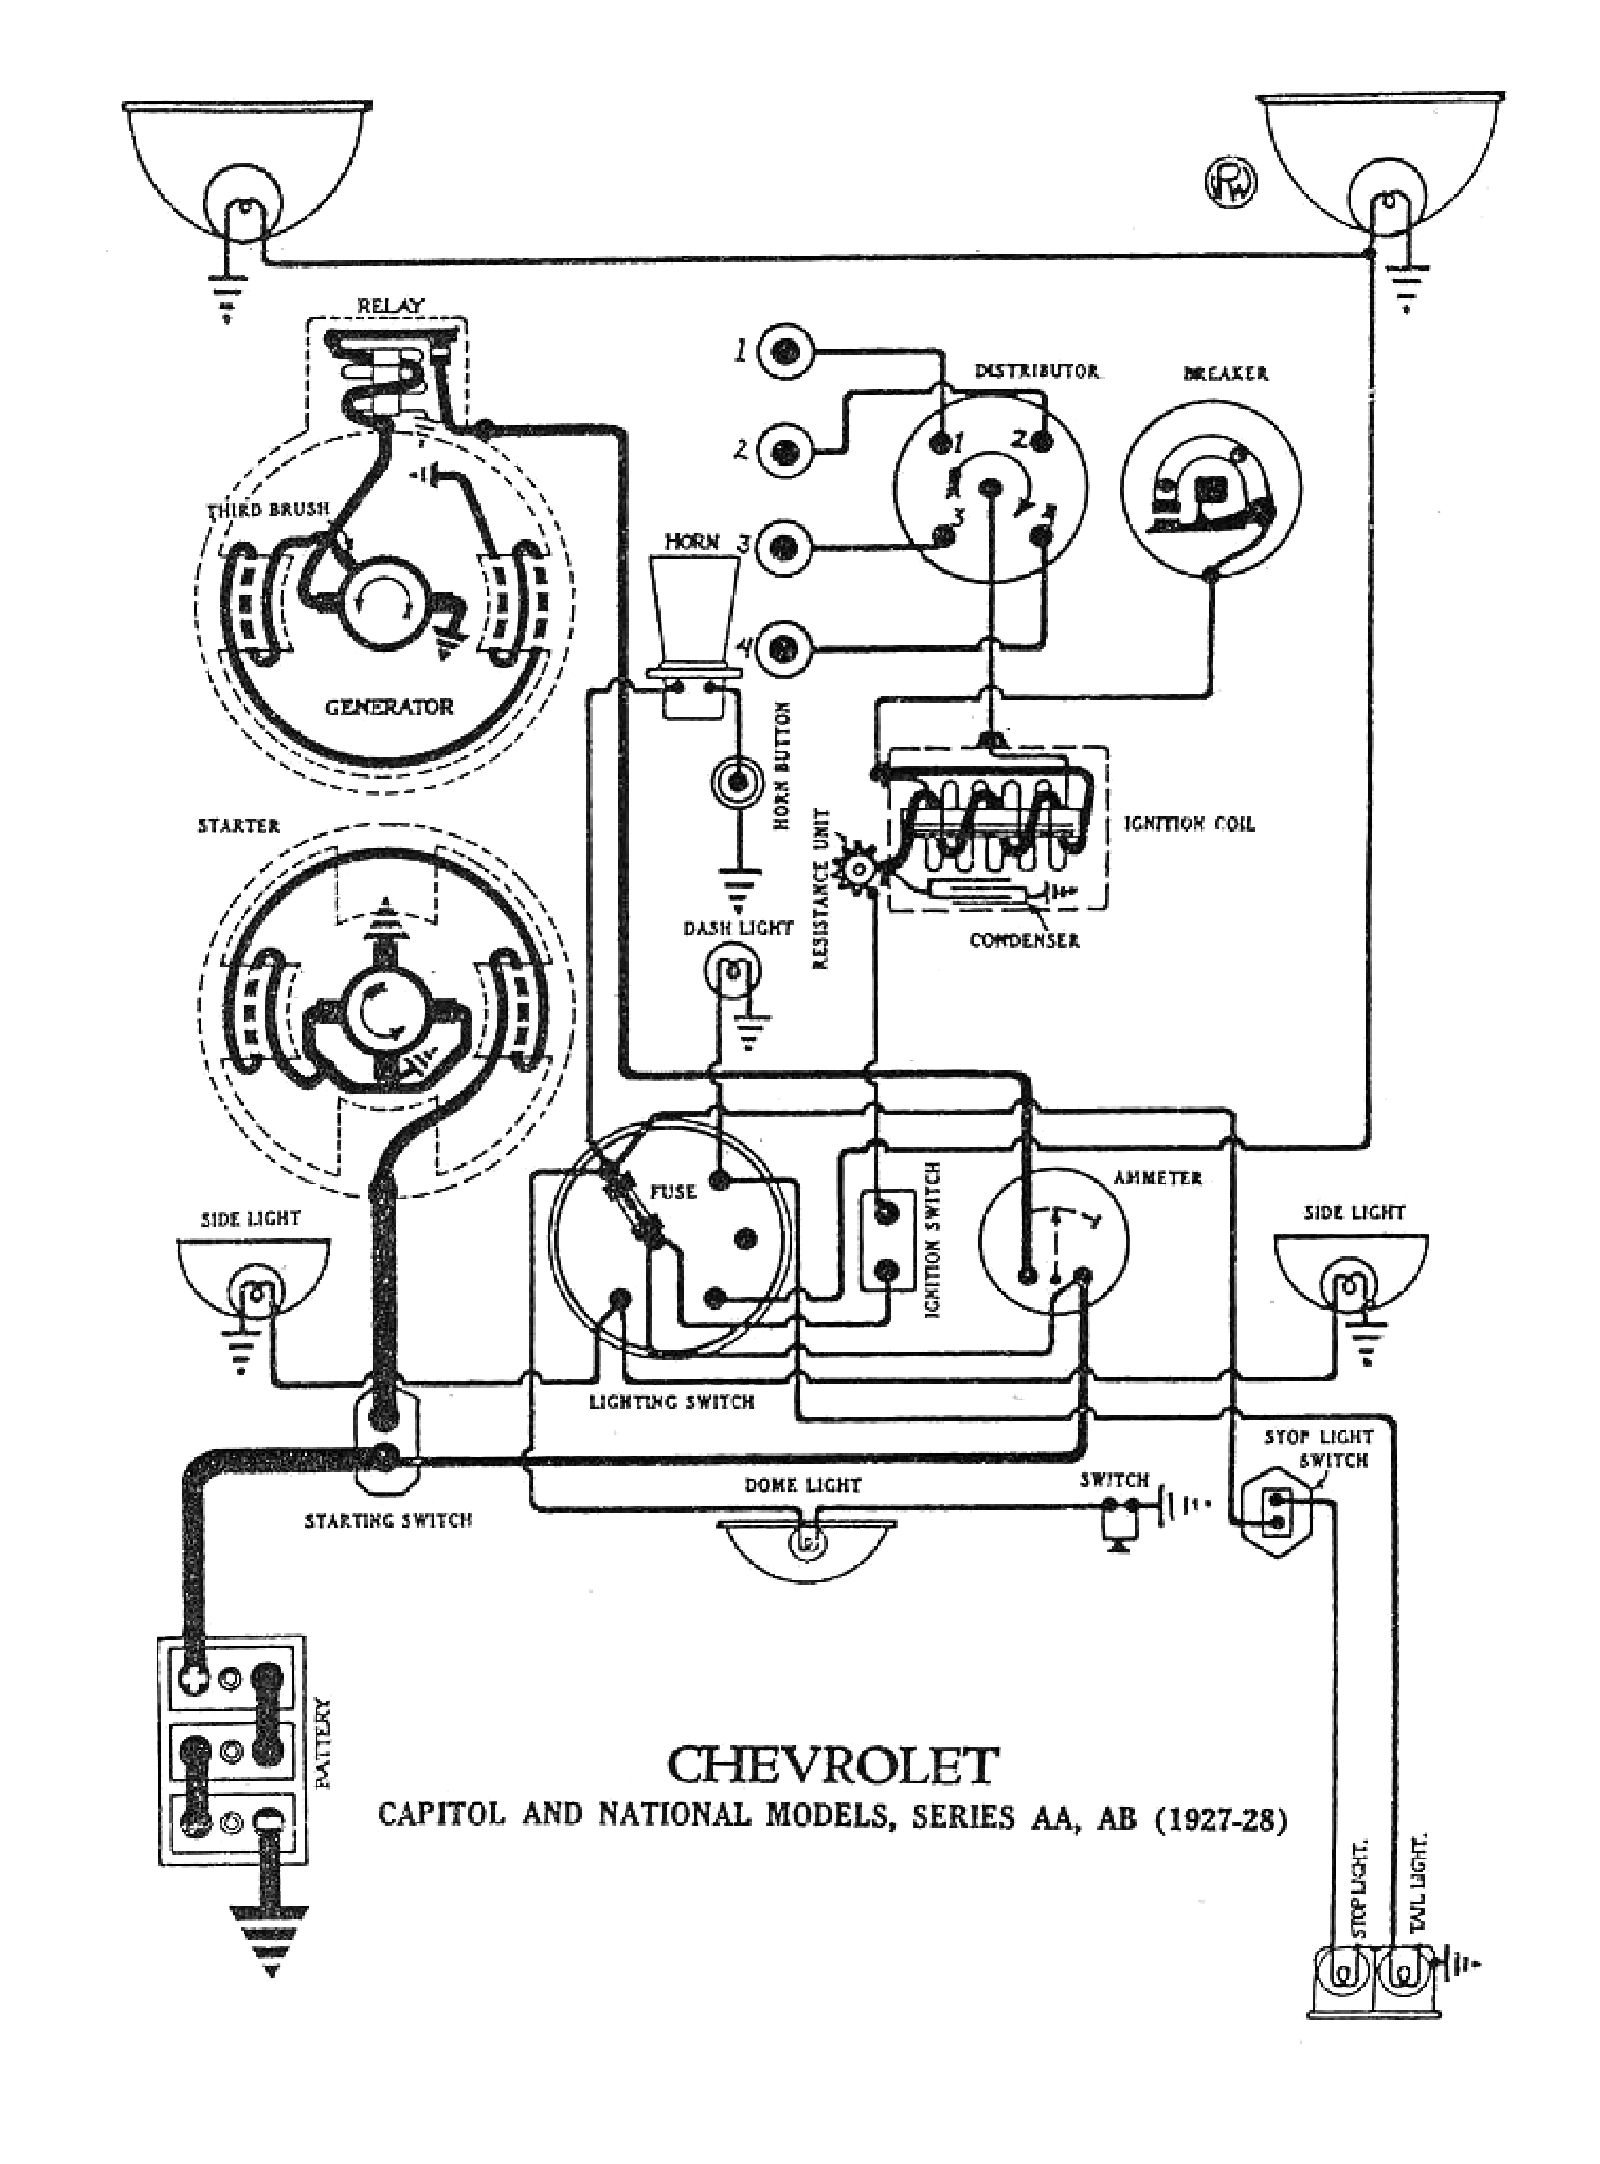 wiring diagram for 1946 chevy pickup